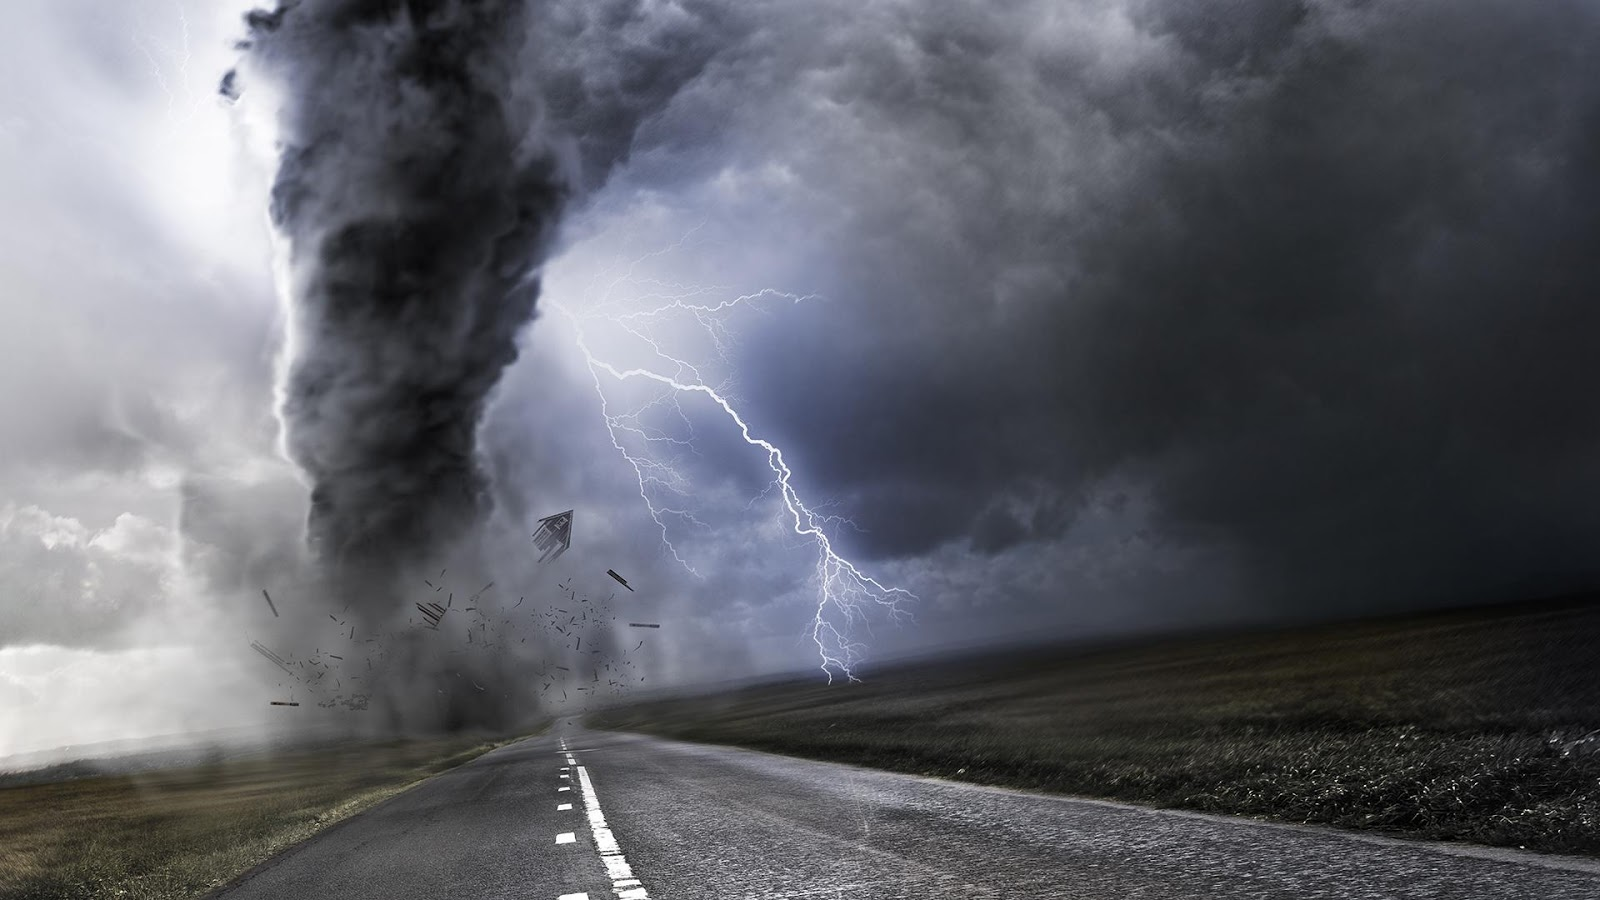 storm live wallpaper amazingly realistic animated backgrounds will 1600x900